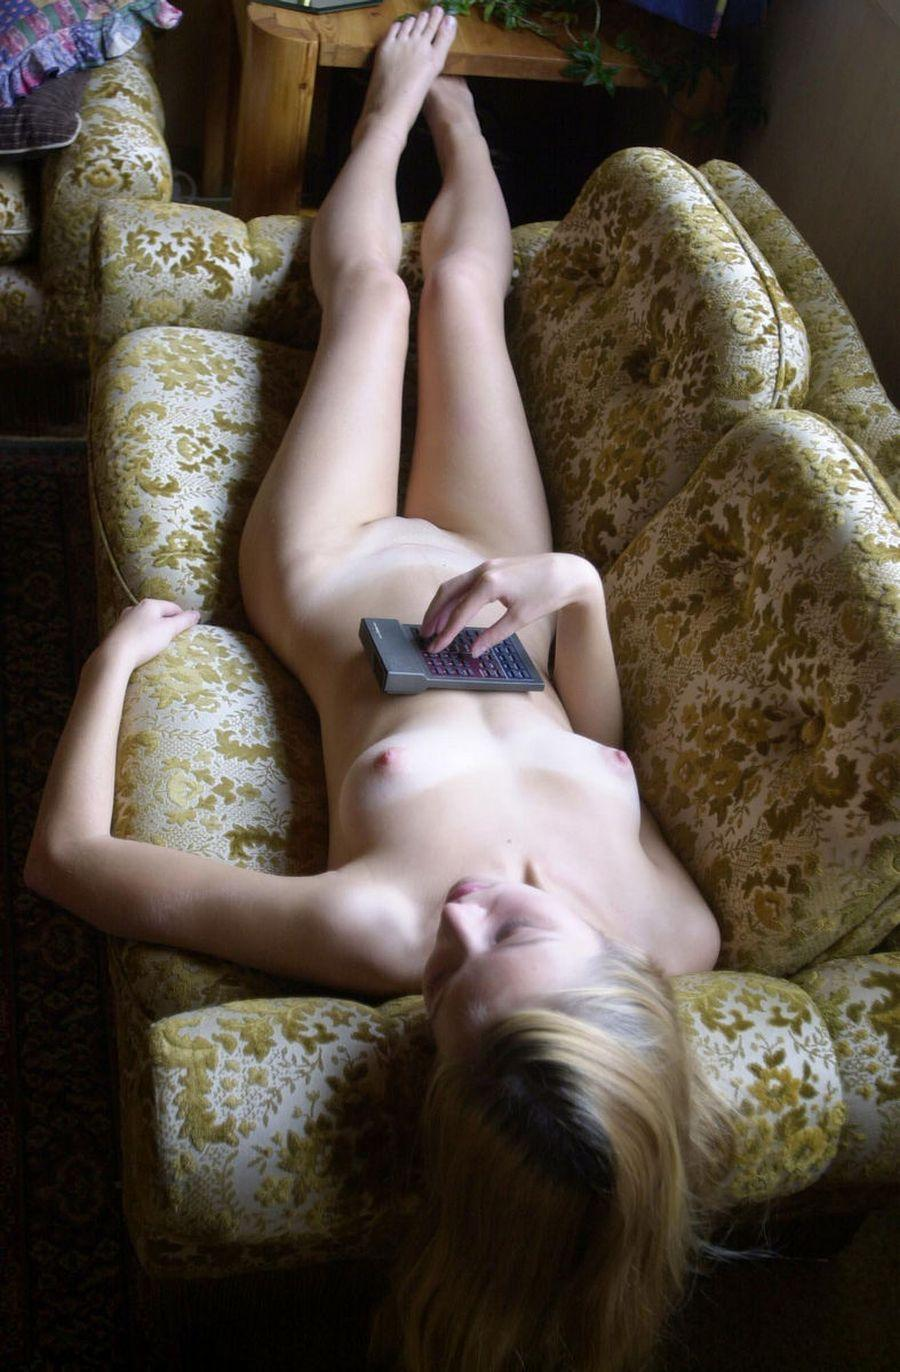 Naked young girl is lying on the couch - 8